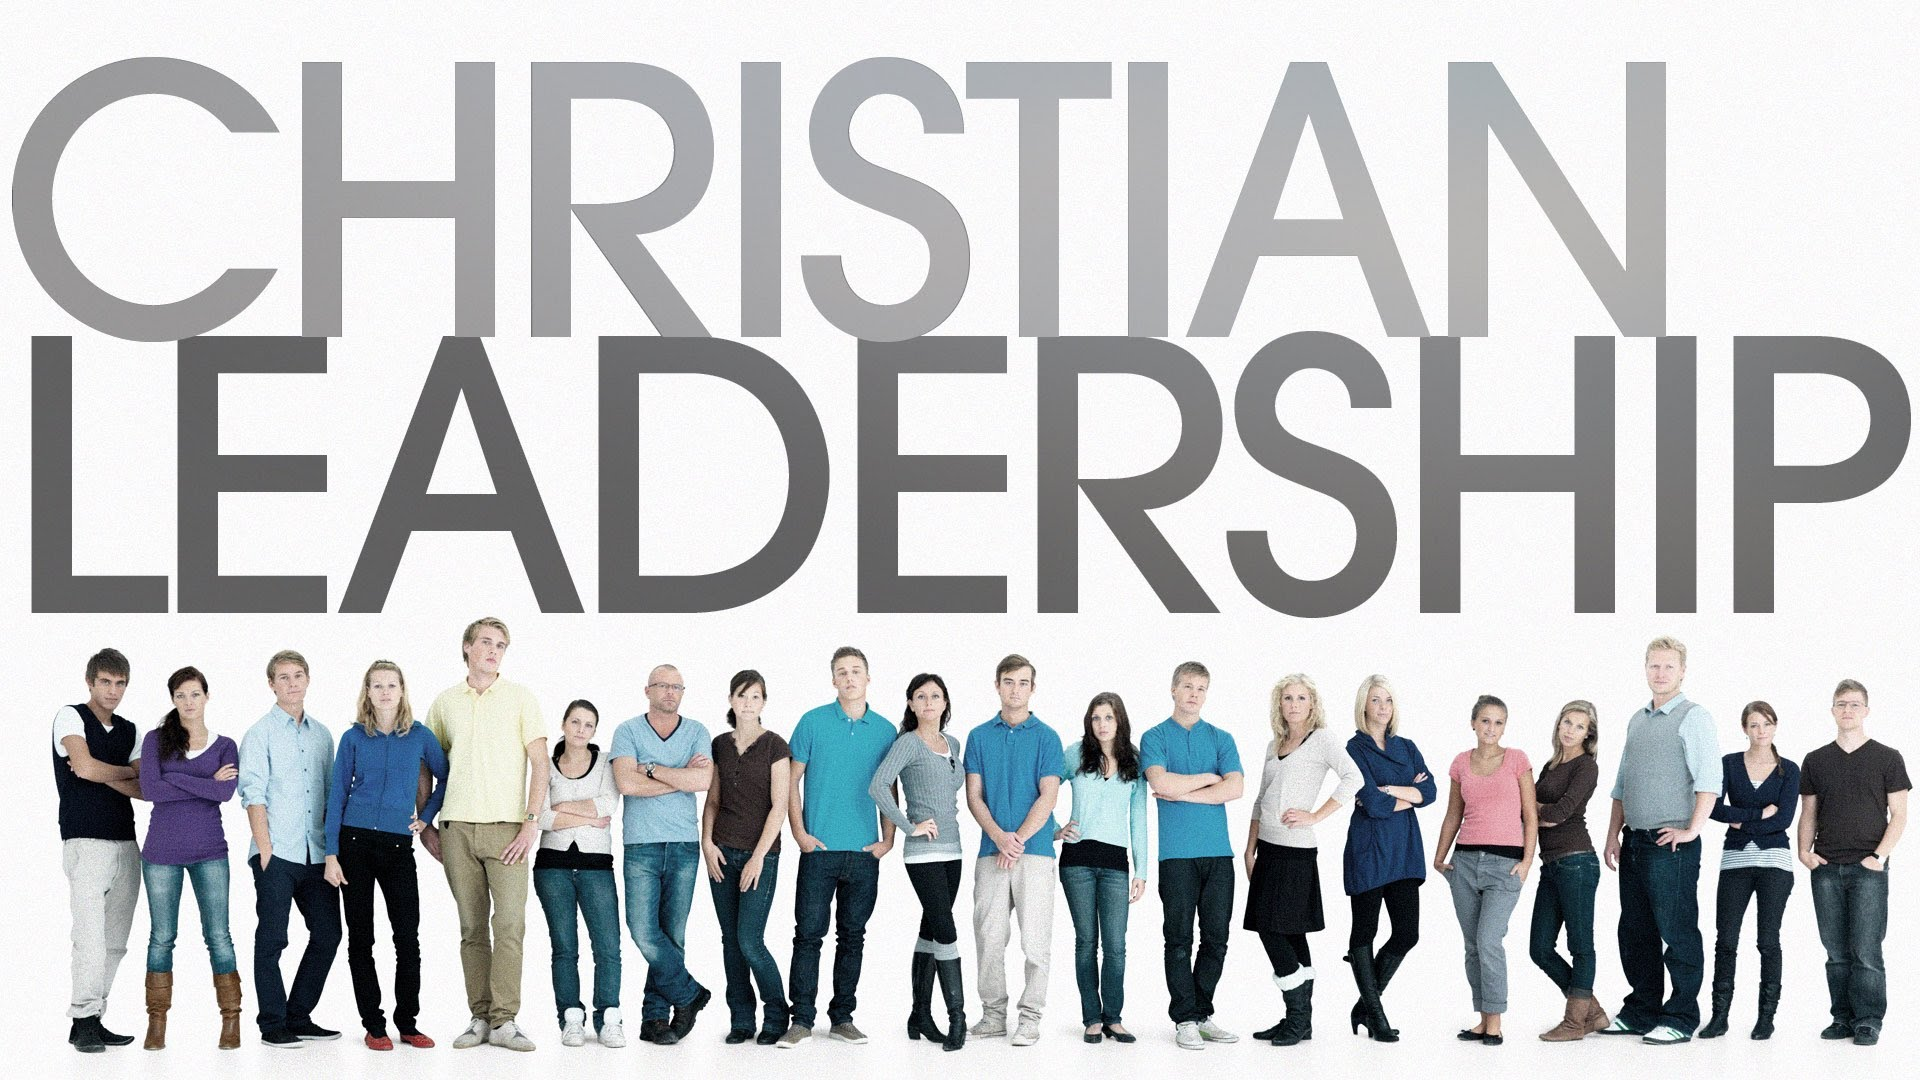 Crowd clipart leadership Clipart Chrisitian Leadership For Leadership